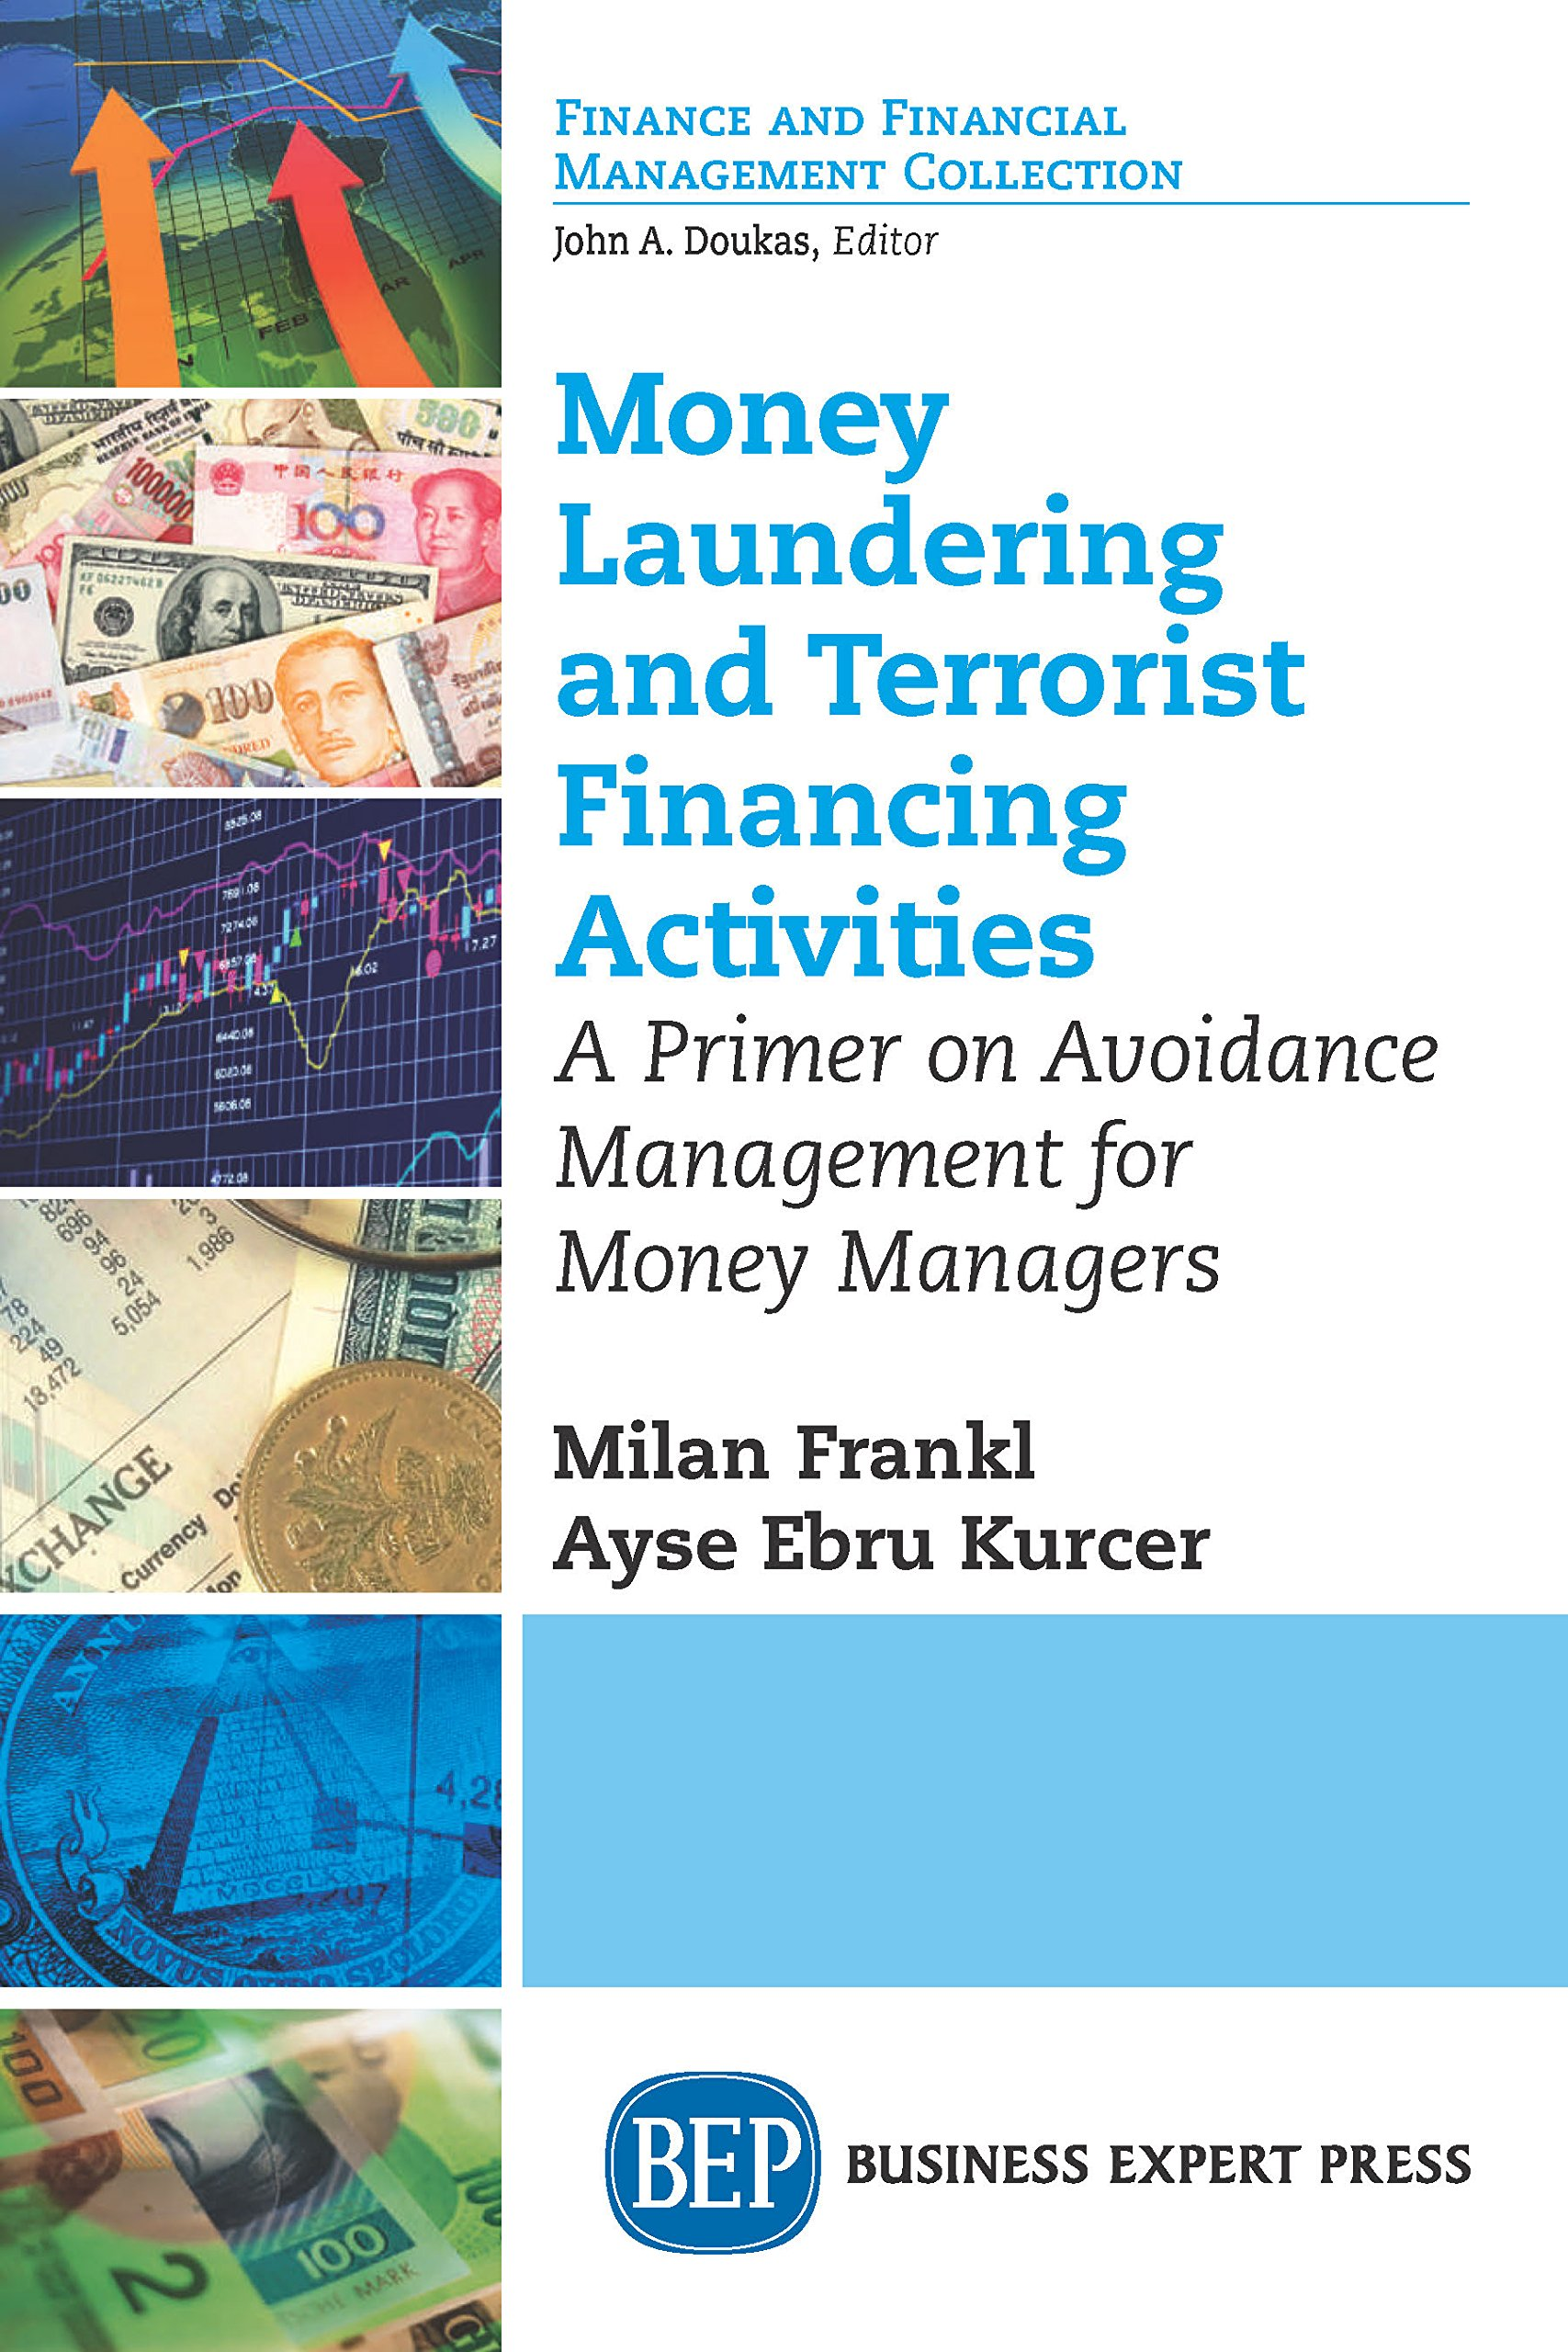 Money Laundering and Terrorist Financing Activities: A Primer on Avoidance Management for Money Managers